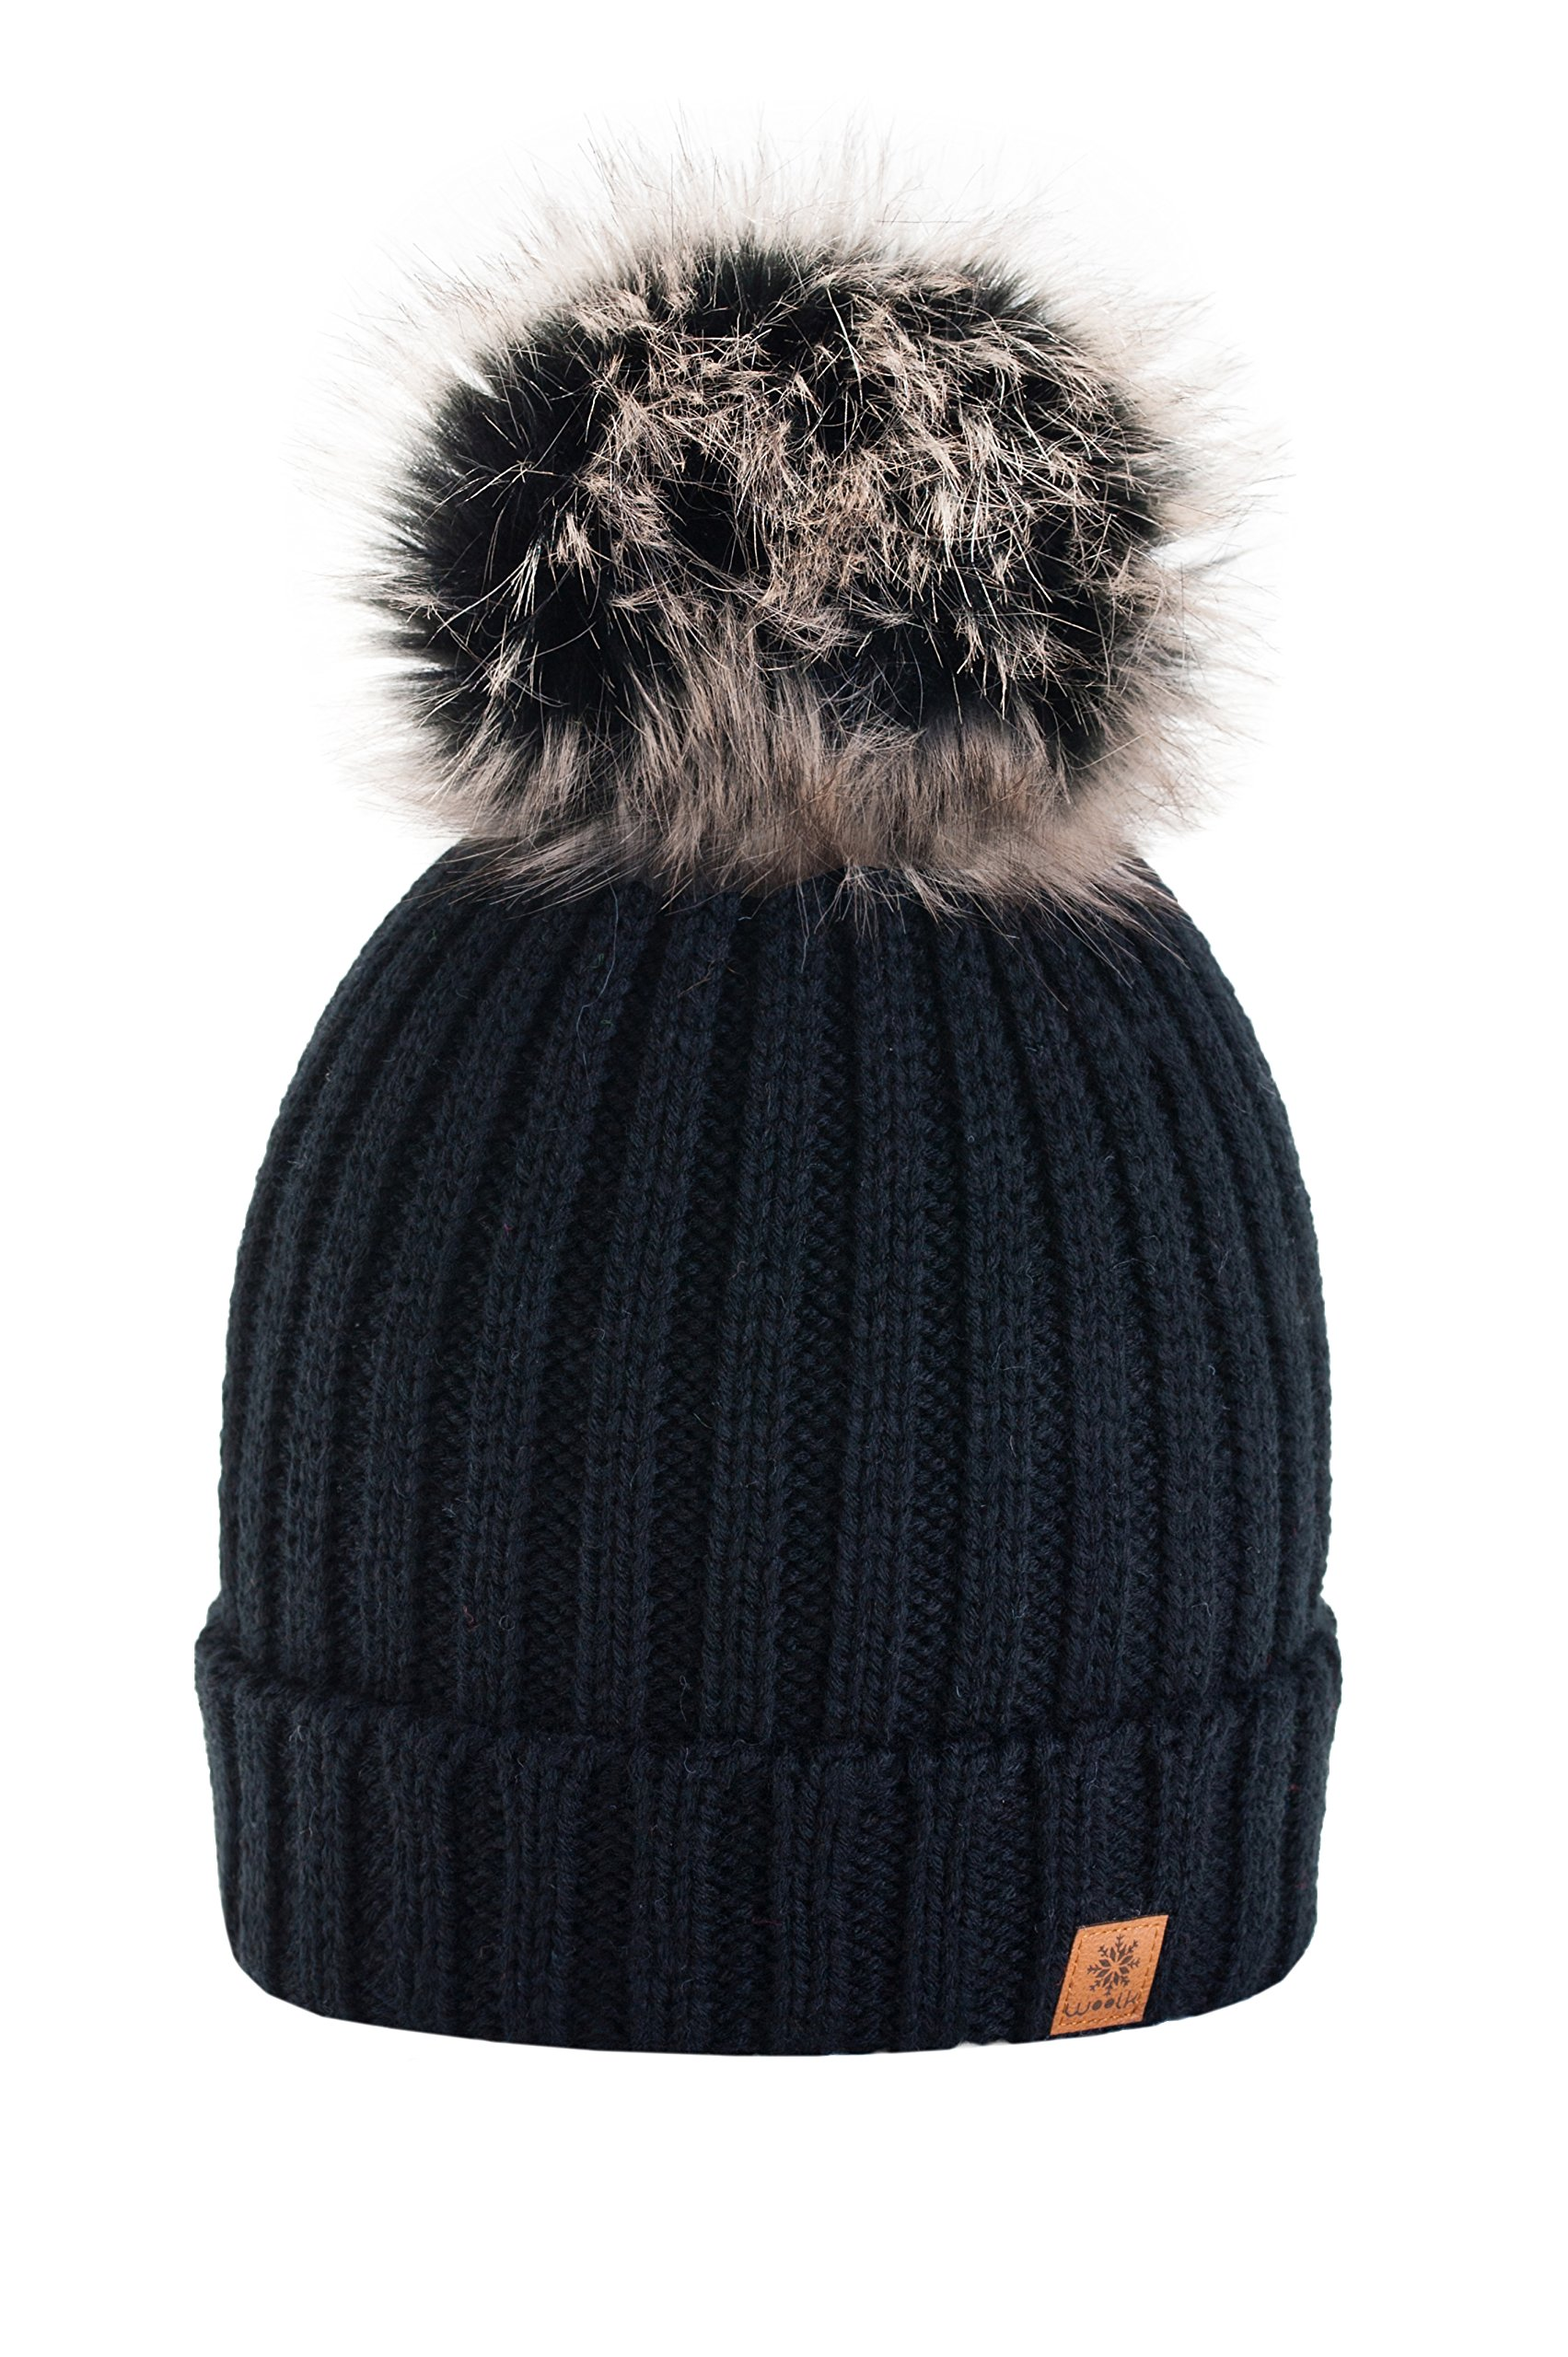 d0035a39117 4sold Rita Womens Girls Winter Hat Wool Knitted Beanie with Large Pom Pom  Cap SKI Snowboard